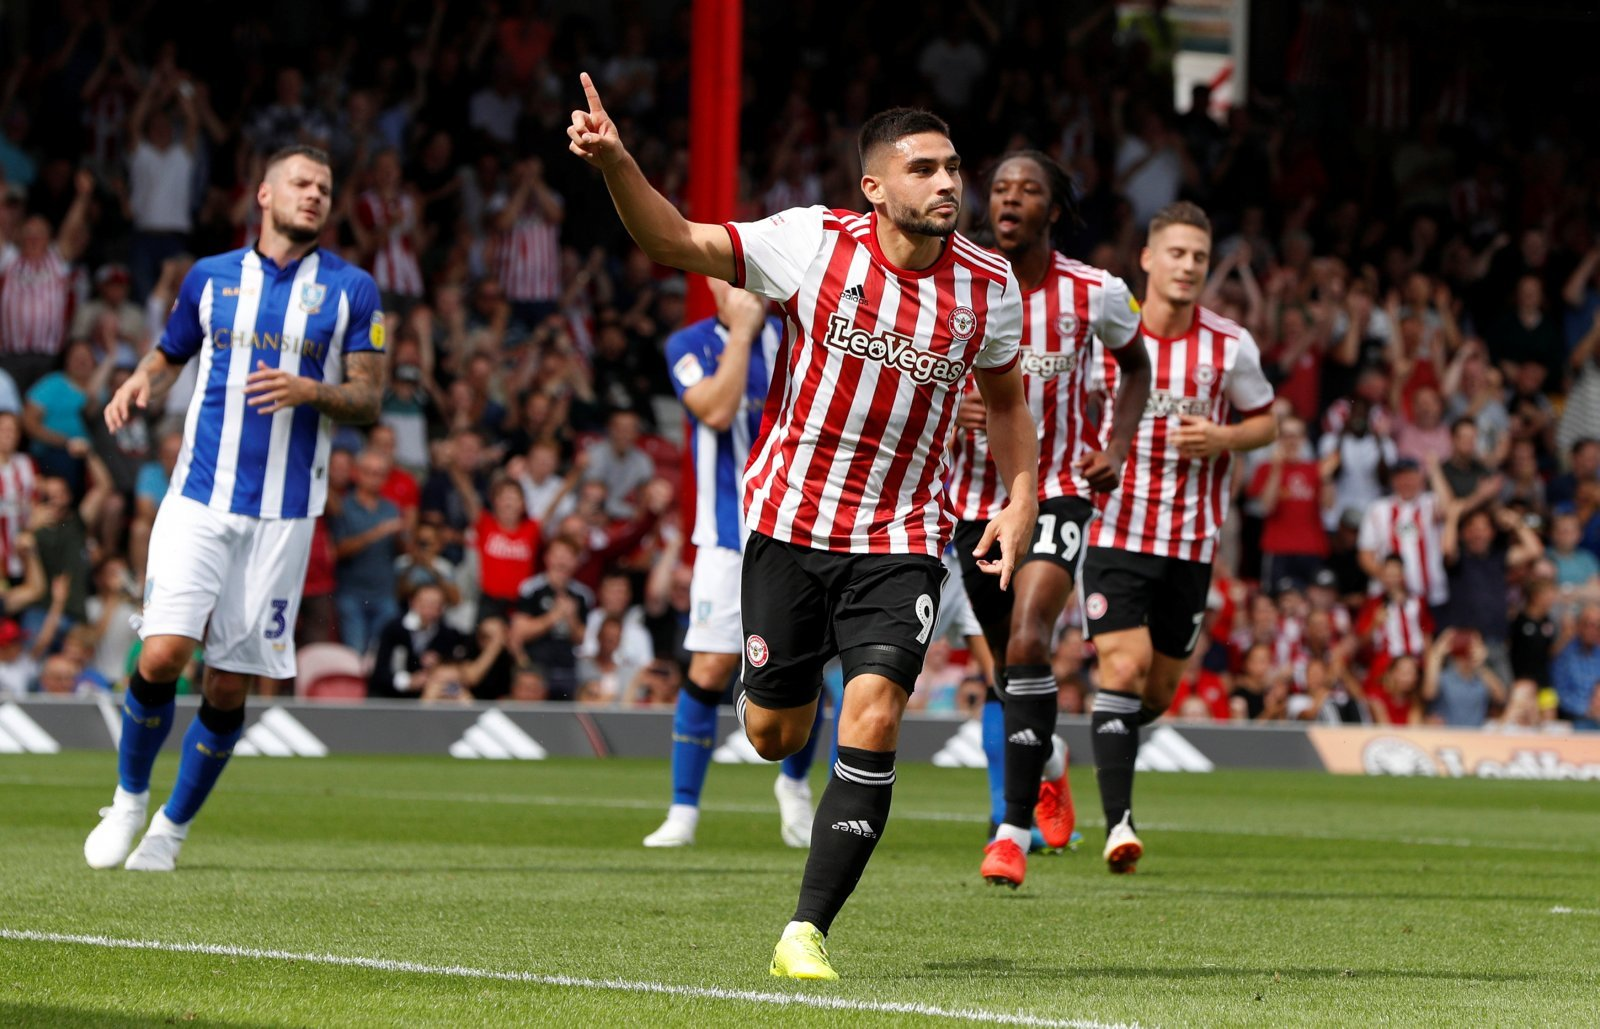 Introducing: The man to take Celtic to the Champions League, Neal Maupay